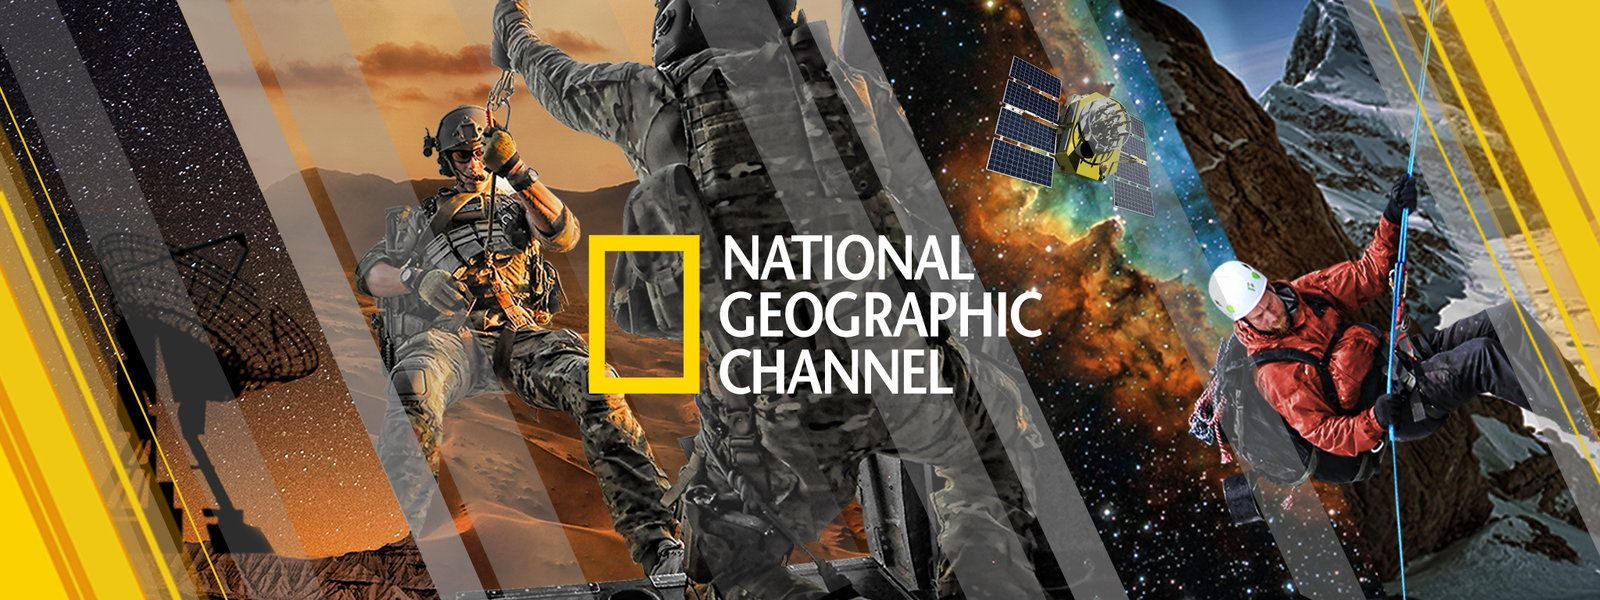 NatGeo Channel on Hulu.tv National geographic channel